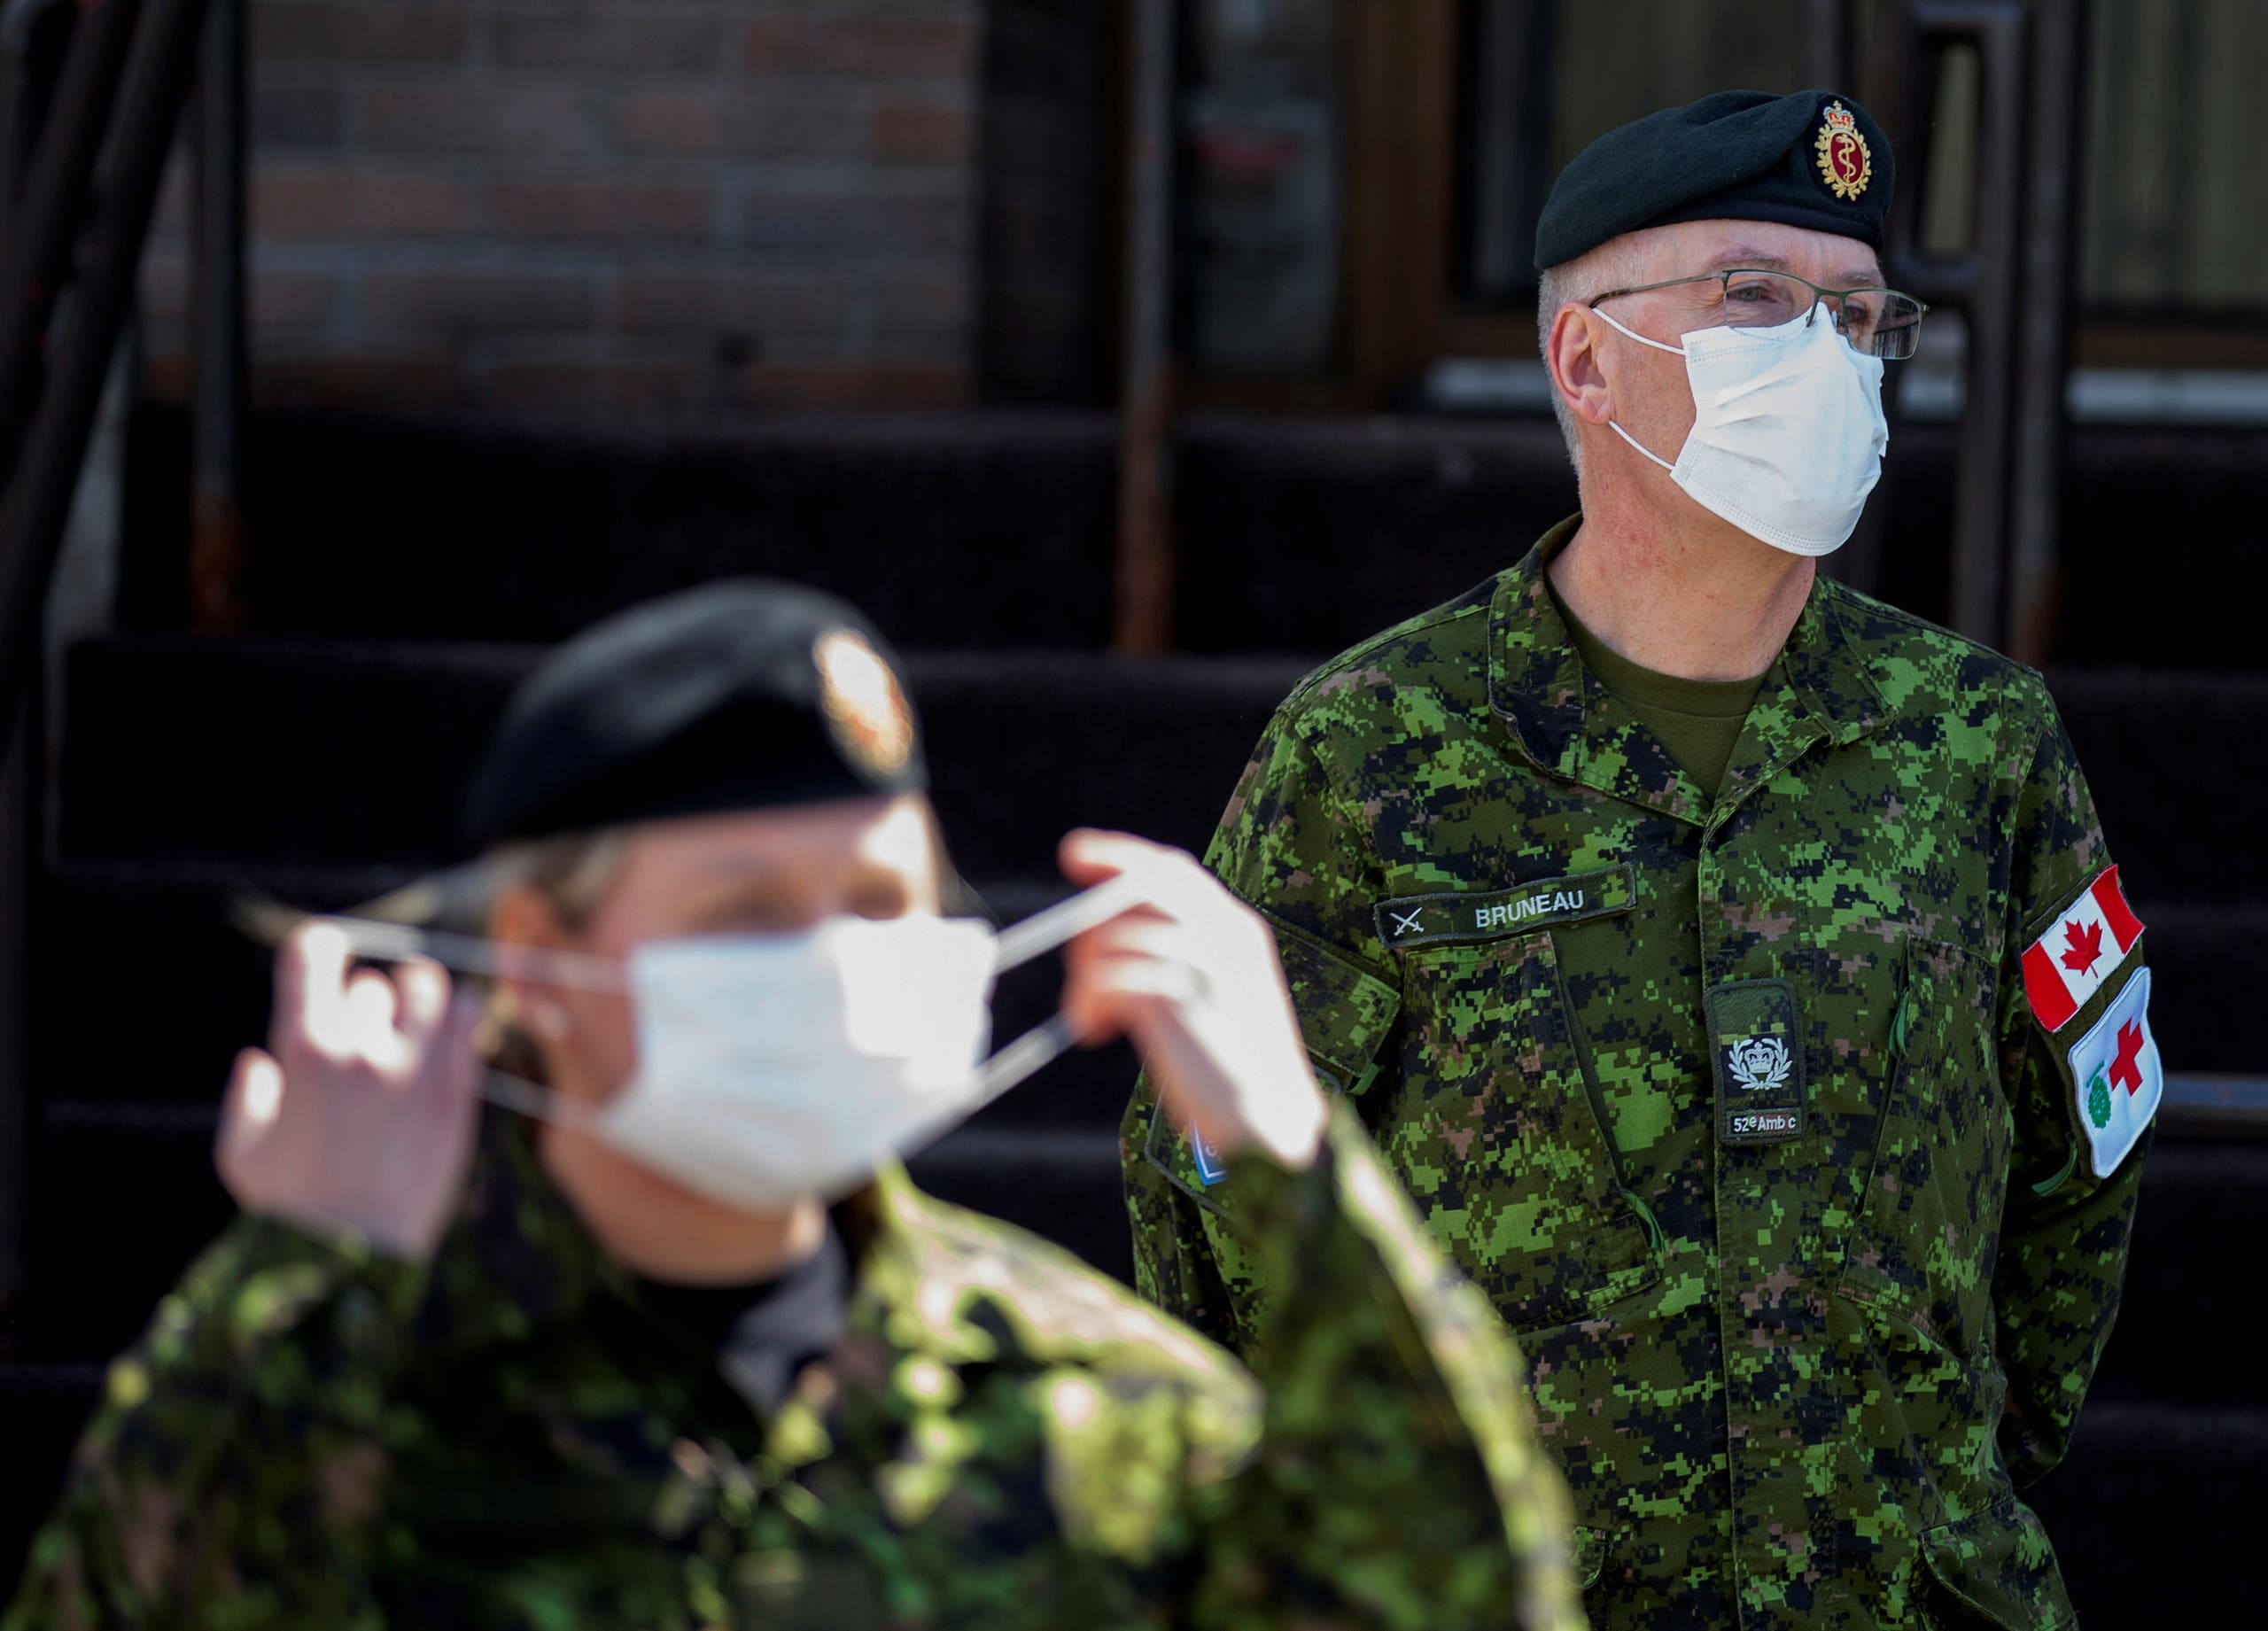 Canadian Armed Forces (CAF) at Centre d'hebergement Yvon-Brunet, a seniors' long-term care center, Montreal, Canada. (File photo: Reuters)